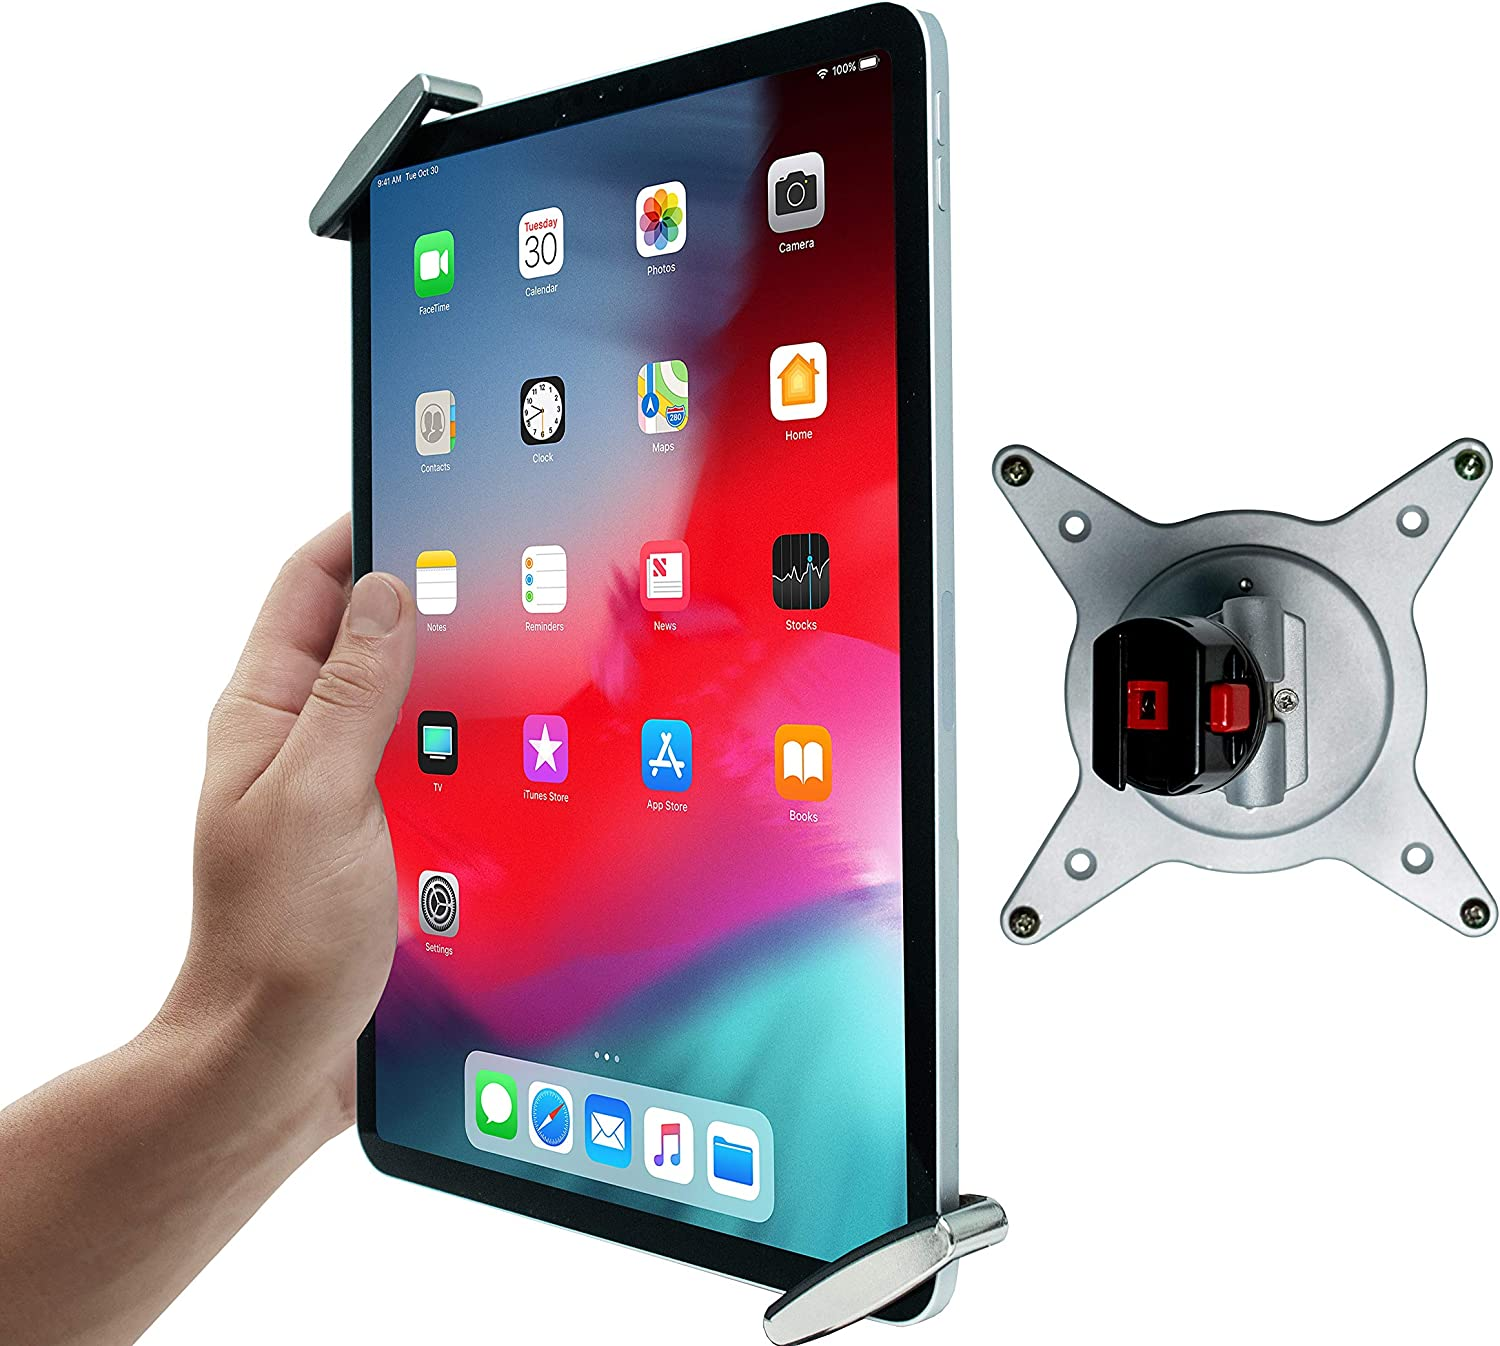 Tablet Mount, CTA Digital Security Grip with Quick-Connect Vesa Mount for iPad 10.2-Inch (7th Gen.), 11-Inch iPad Pro, iPad Mini, iPad Gen. 6 (2018), and More (PAD-TSHV)